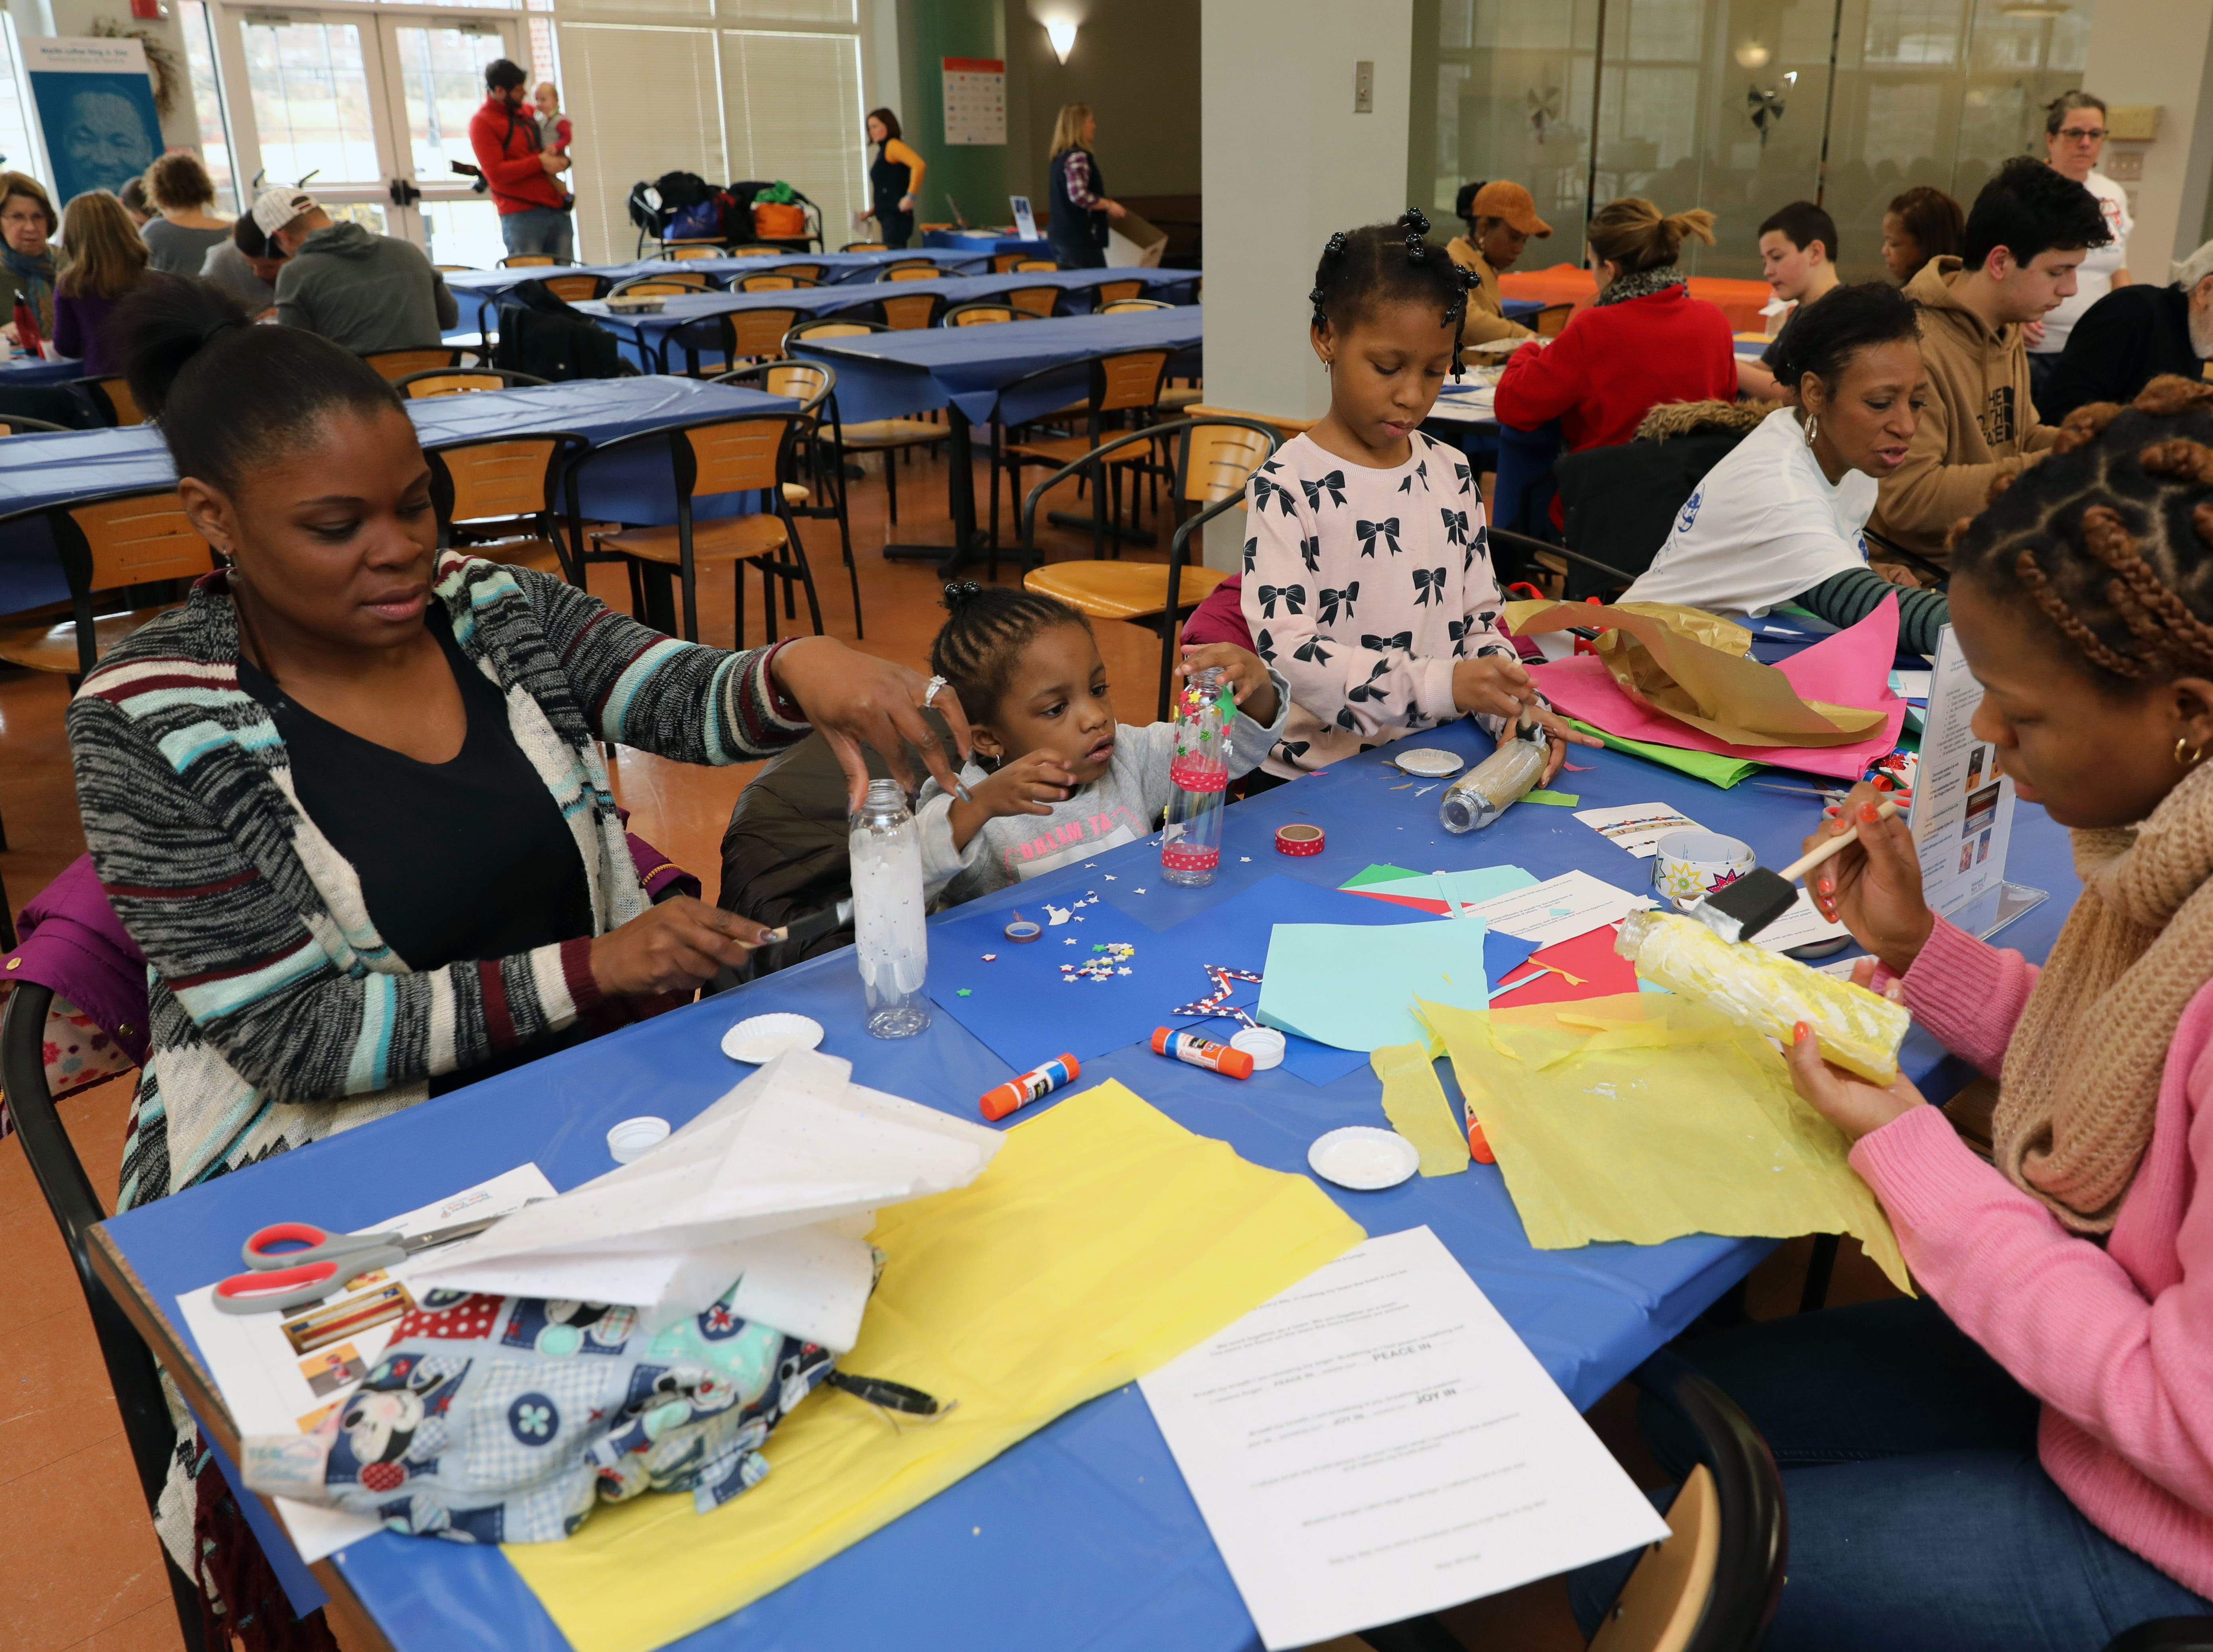 """From left: Sherell Ferrer, Savanna Ferrer, 4, Faith Ferrer, 8 and Tatyana Ferrer create gratitude jars to benefit """"United for the Troops"""" during the Volunteer New York, Martin Luther King Jr. National Day of Service program at Dominican College in Orangeburg, Jan. 19, 2019."""